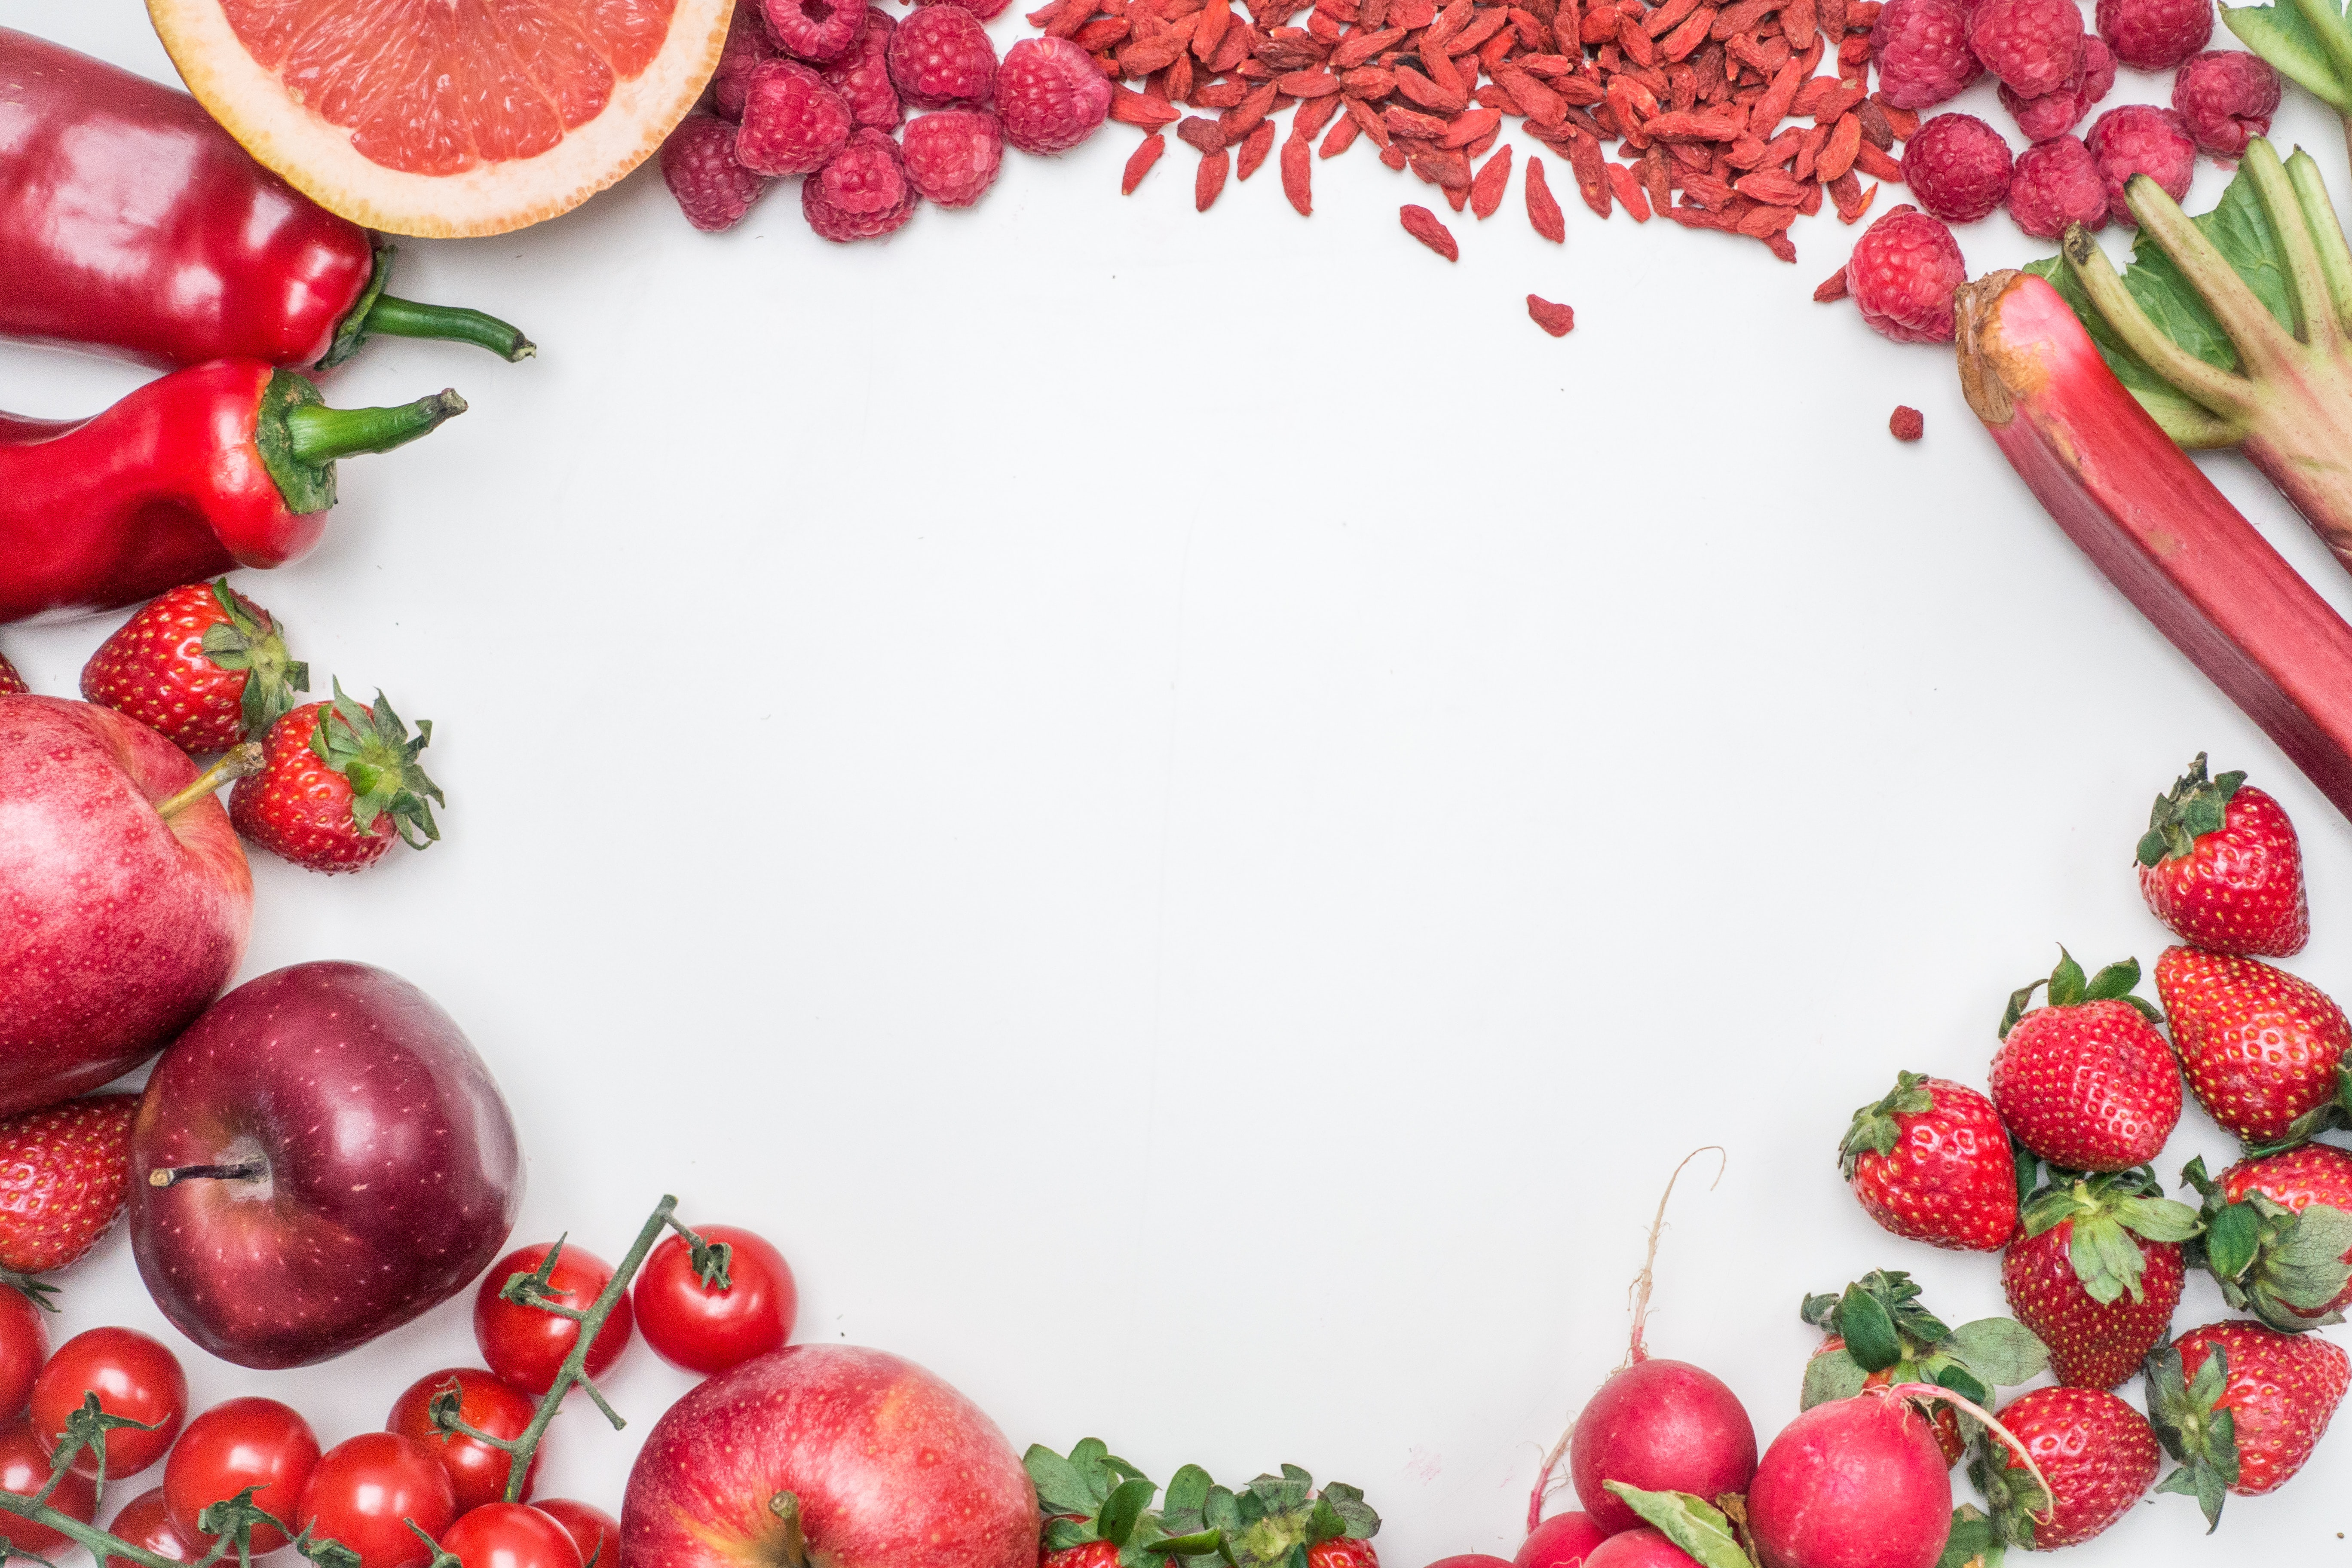 Red fruit and vegetable border with berries, chilis, and seeds on a white table